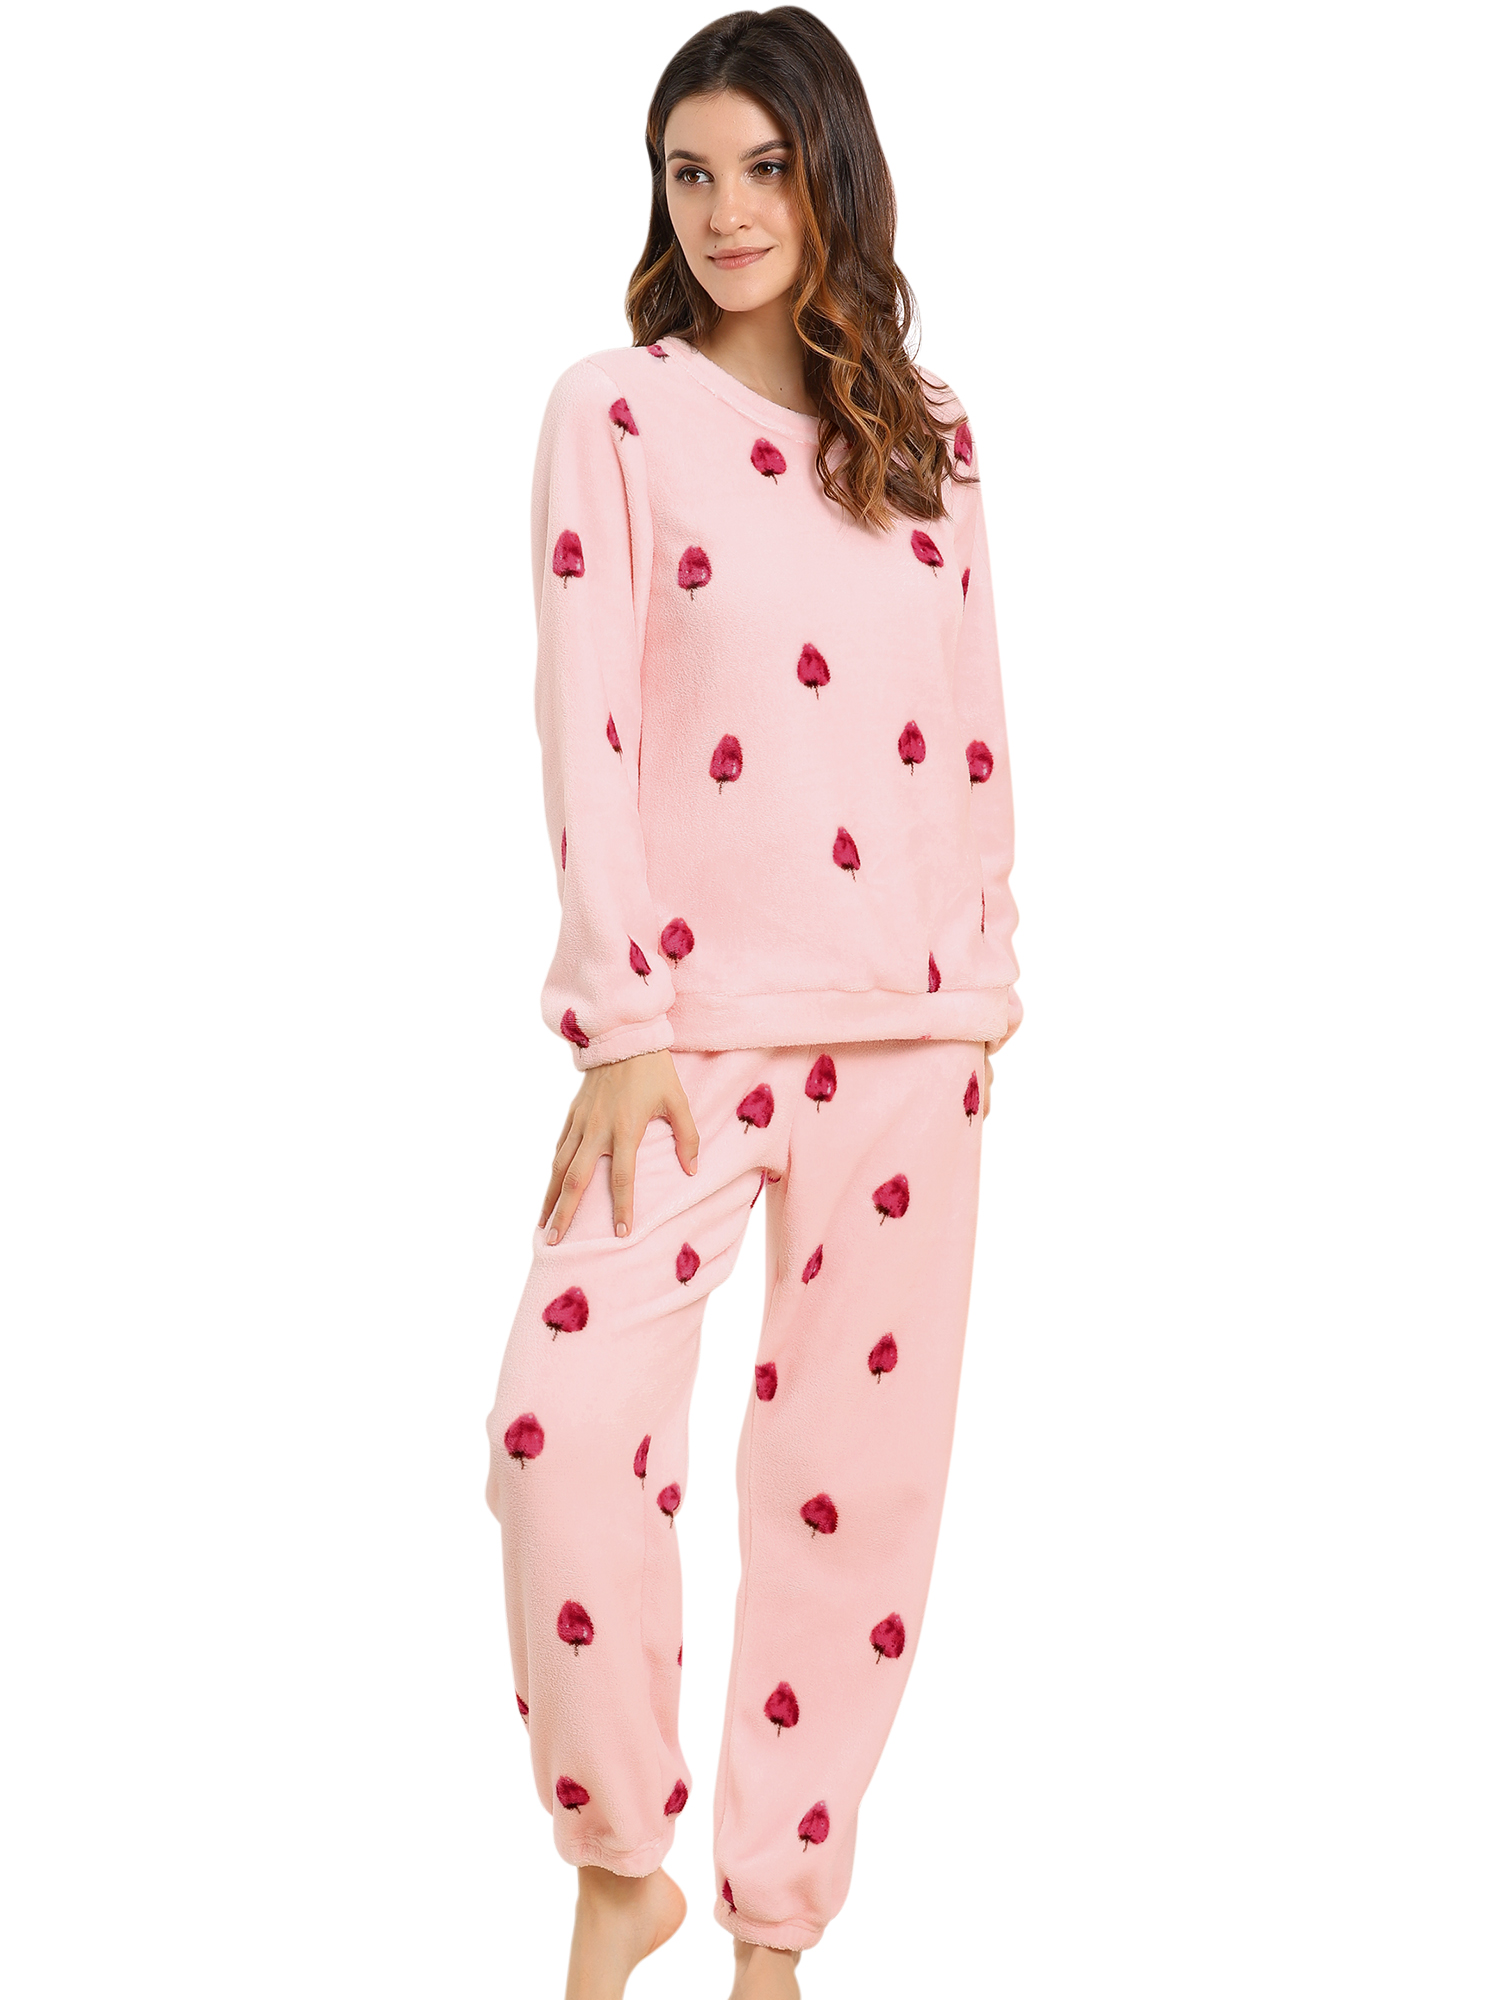 Winter Flannel Pajama Sets for Women Long Sleeve Medium Strawberry Pink